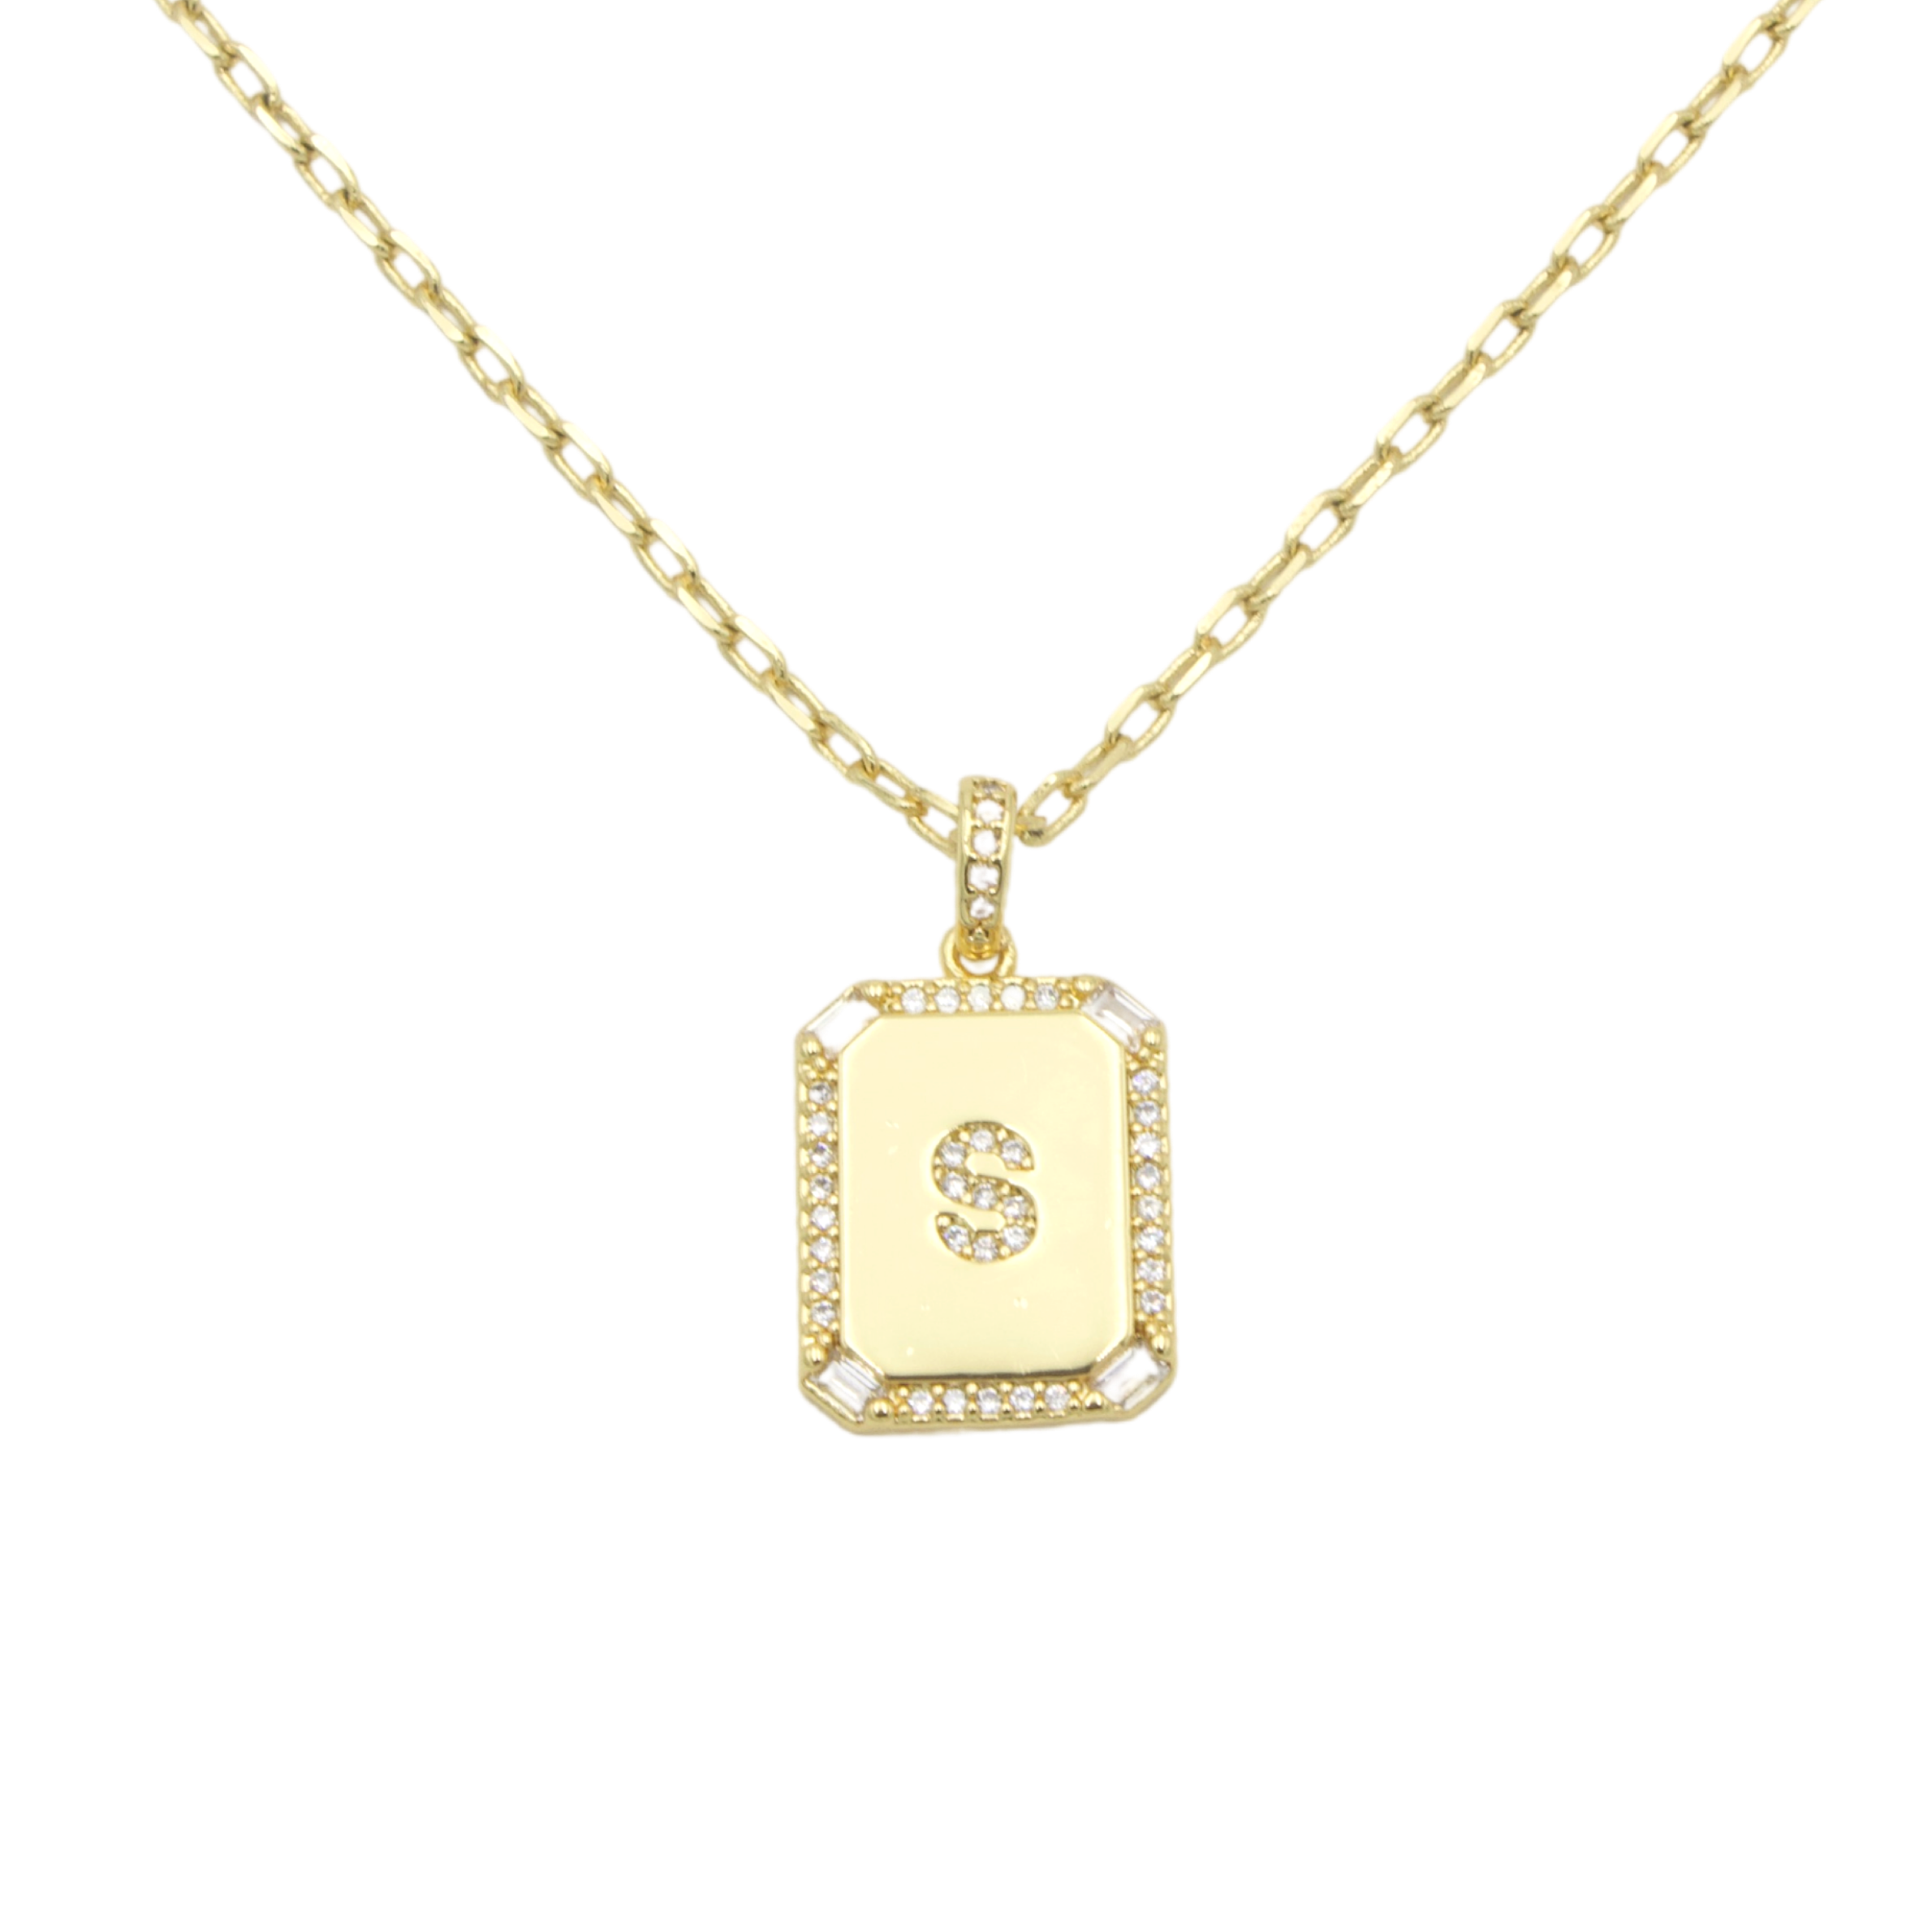 AW Boutique's gold filled 16 inch cable chain necklace finished with a dainty initial pendant with cubic zirconia detail. S initial shown.